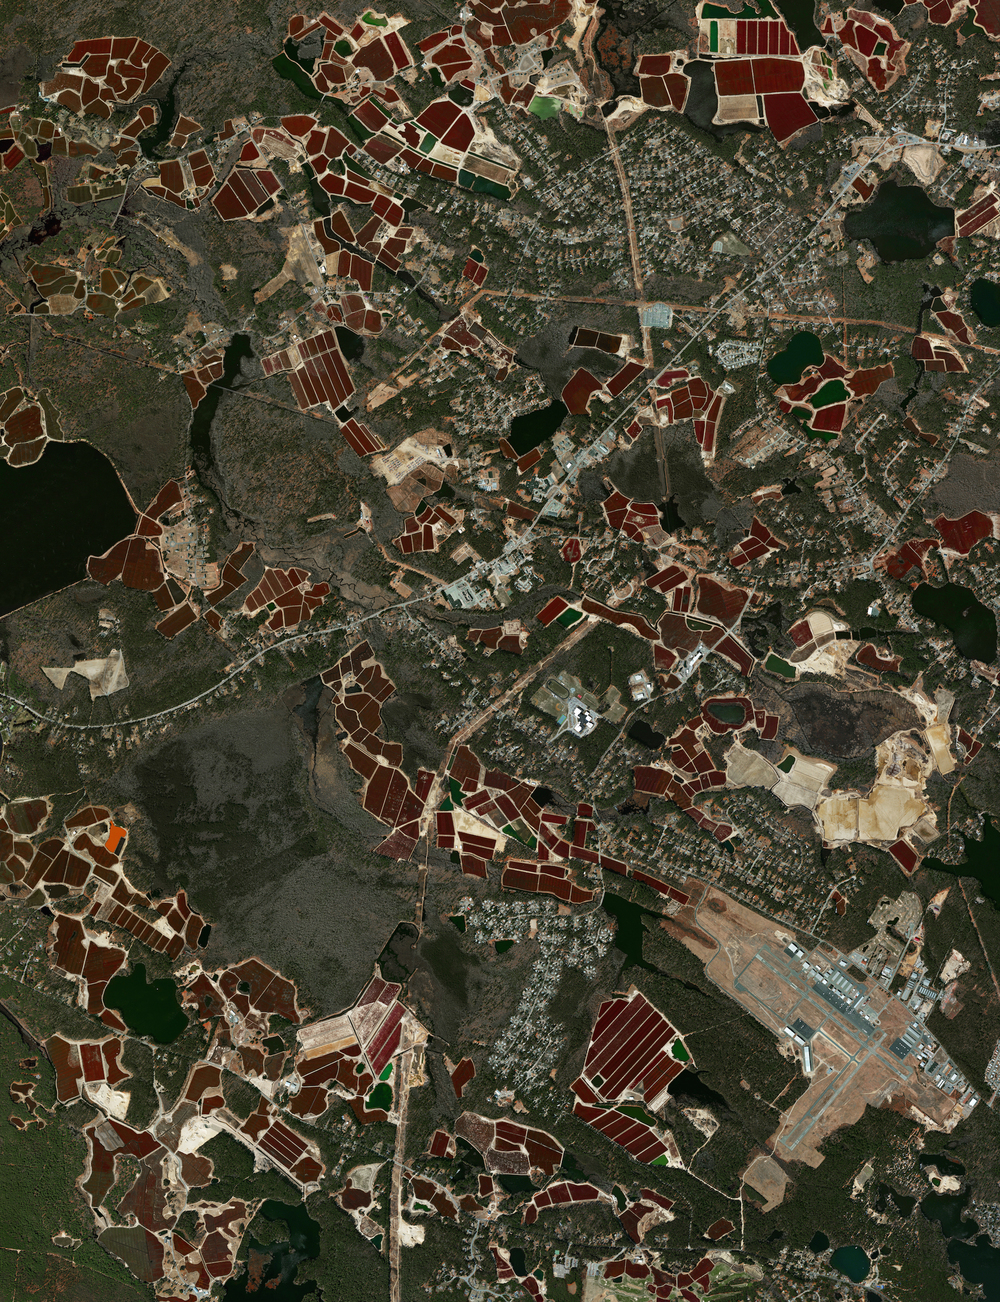 11/26/2015 Cranberry bogs Plymouth, Massachusetts, USA 41.914292034°, -70.792760538°   If you put cranberries on your Thanksgiving turkey today, there's a chance they came from these bogs in Plymouth, Massachusetts, USA. Cranberries are a Native American wetland fruit that are grown on low-lying vines, floating in beds of water layered with sand, peat, gravel, and clay. Coincidentally, the town of Plymouth is also the site of the colony founded by the Pilgrims in 1620 and was the home to the first Thanksgiving feast in 1621. Happy Thanksgiving from Daily Overview!